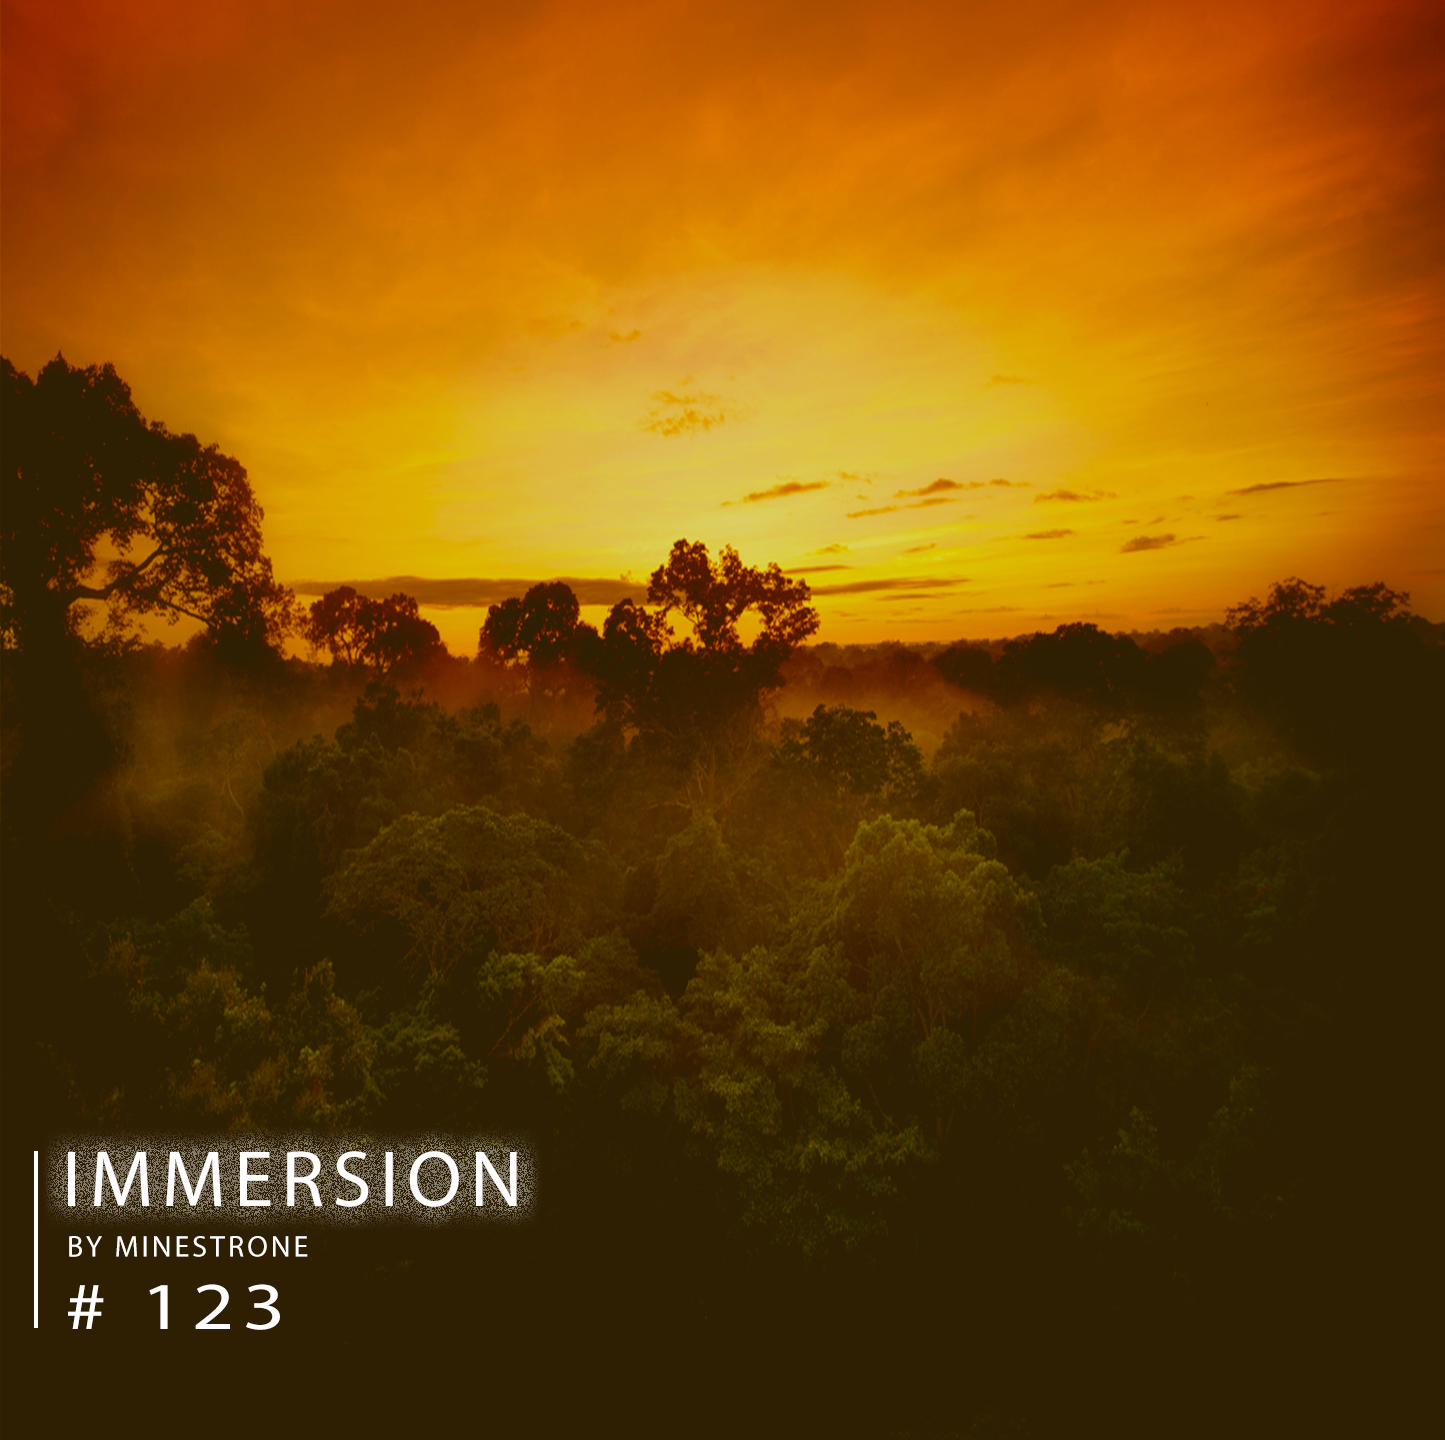 Immersion :: Episode 123 (aired on October 14th, 2019) banner logo